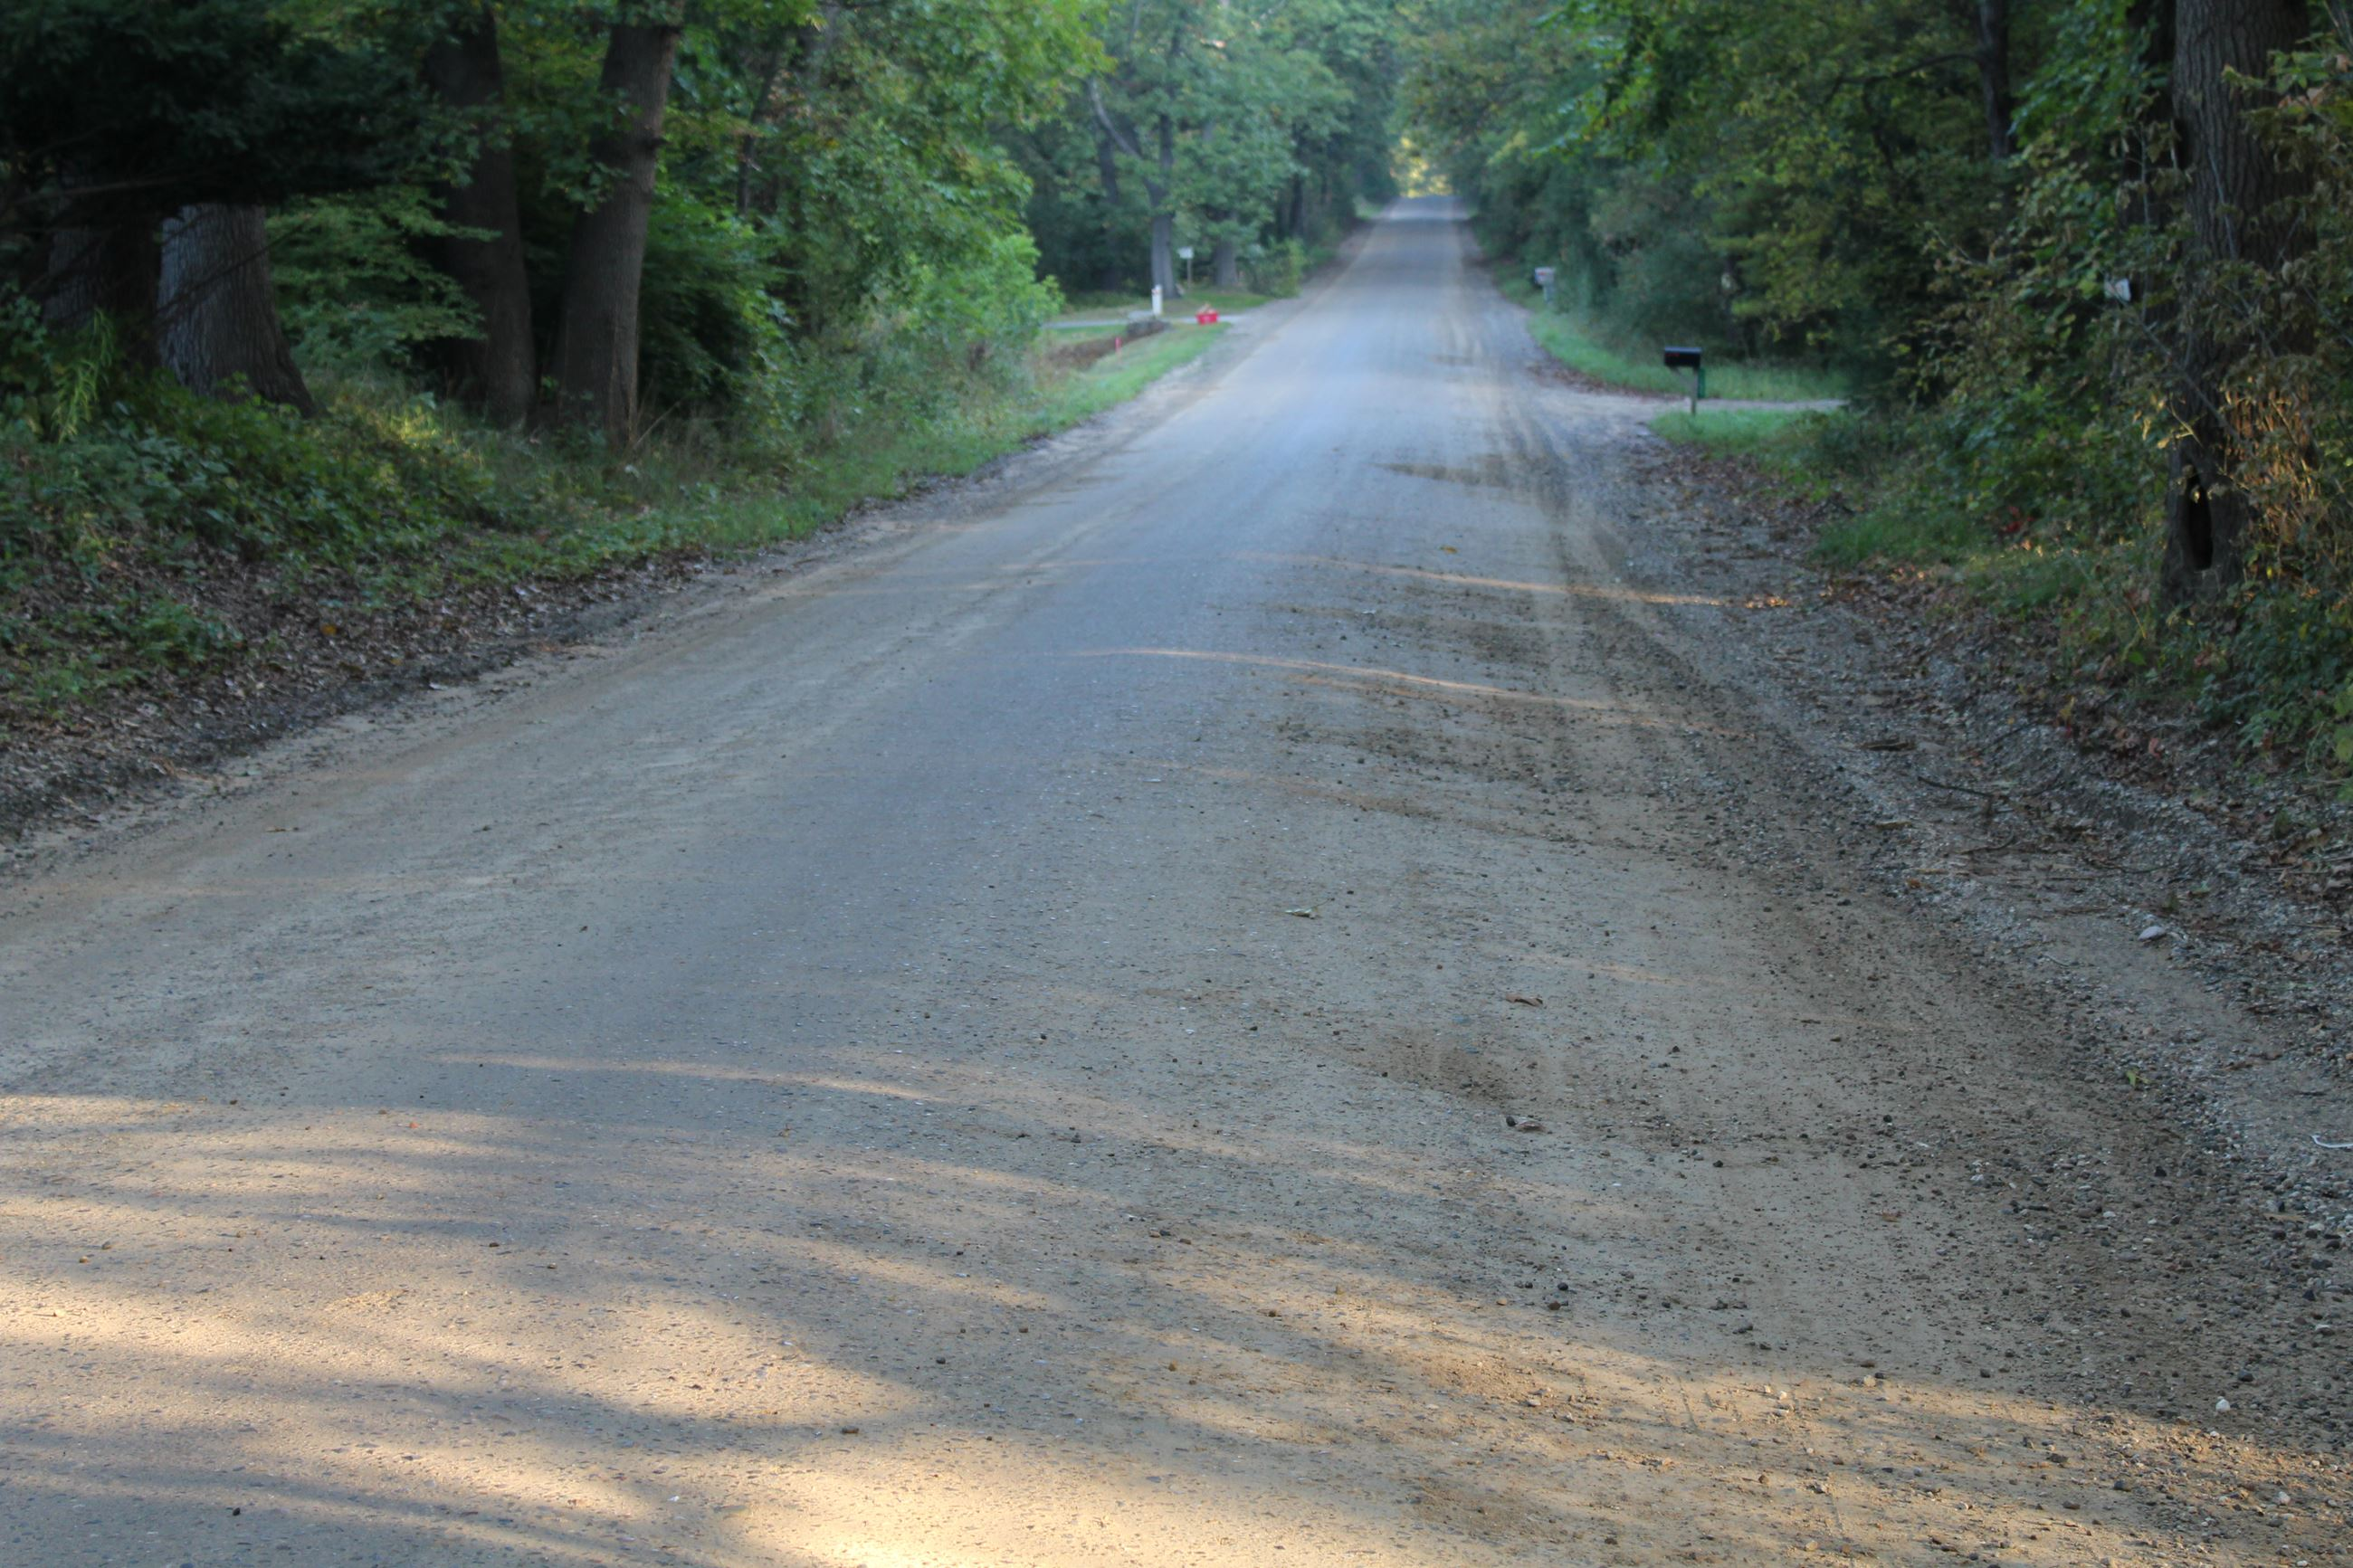 Barron Road south of Grange Hall Road (gravel road photo)